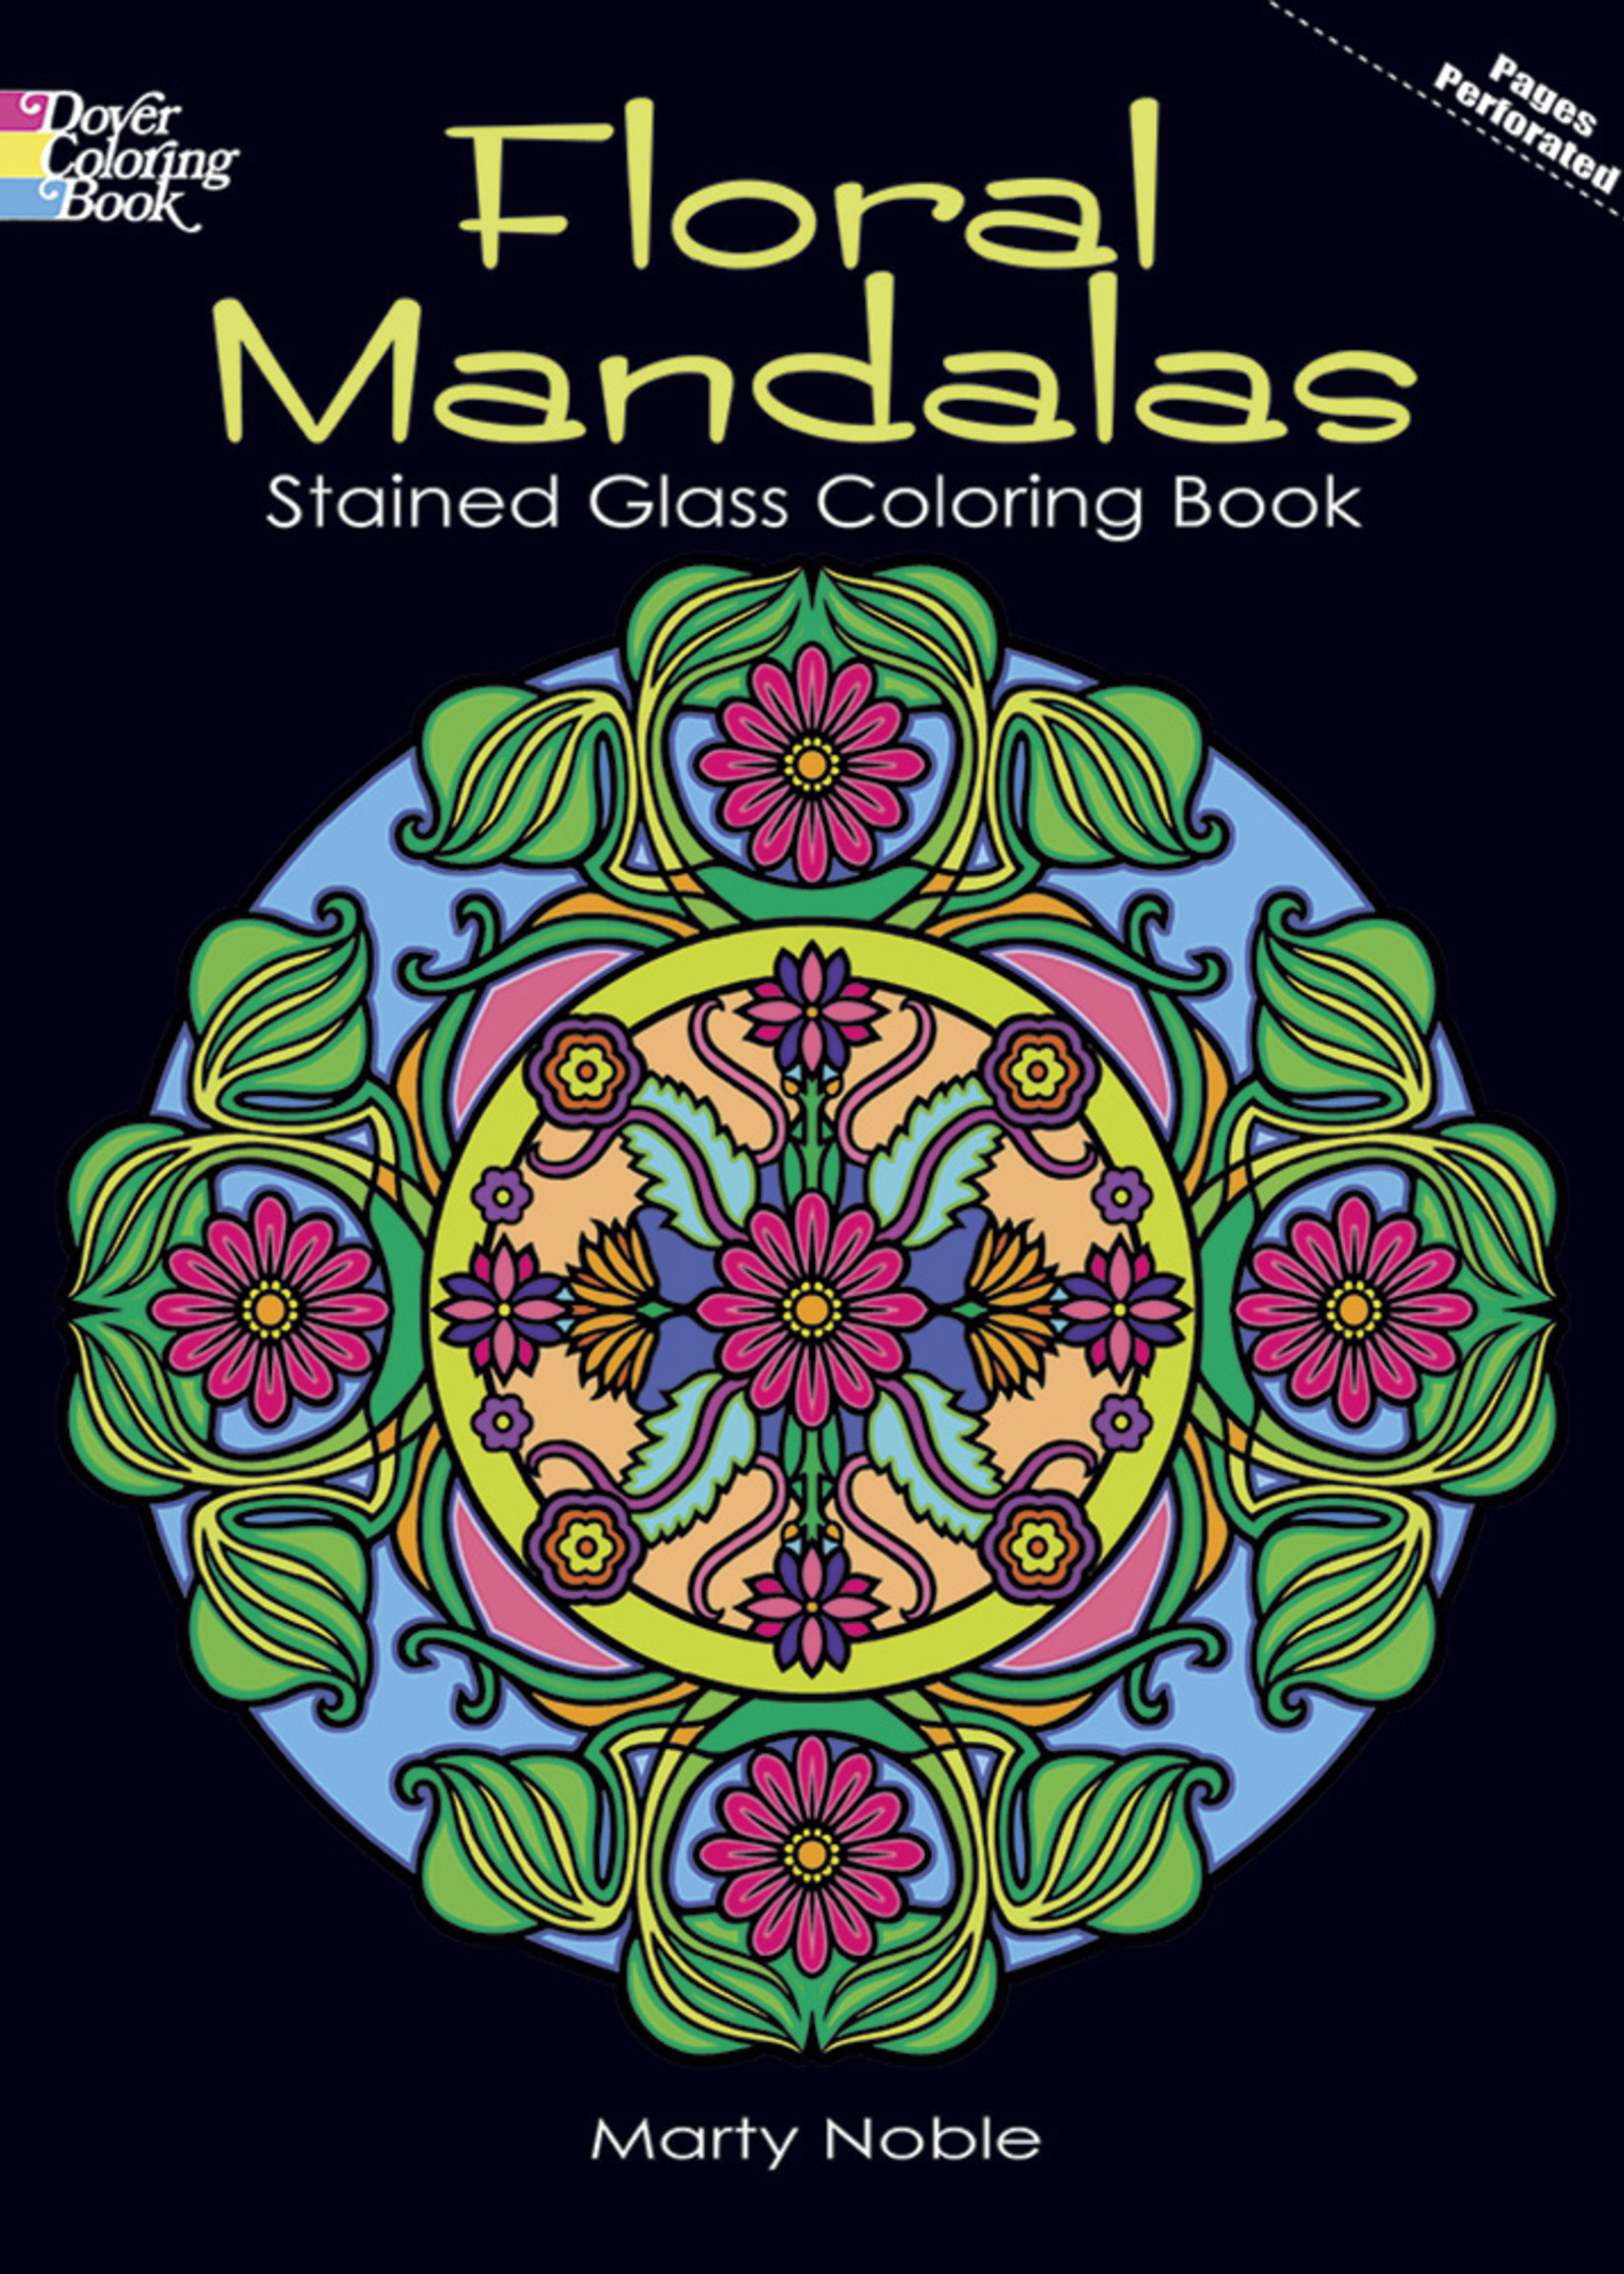 Floral Mandalas Stained Glass Coloring Book - PB